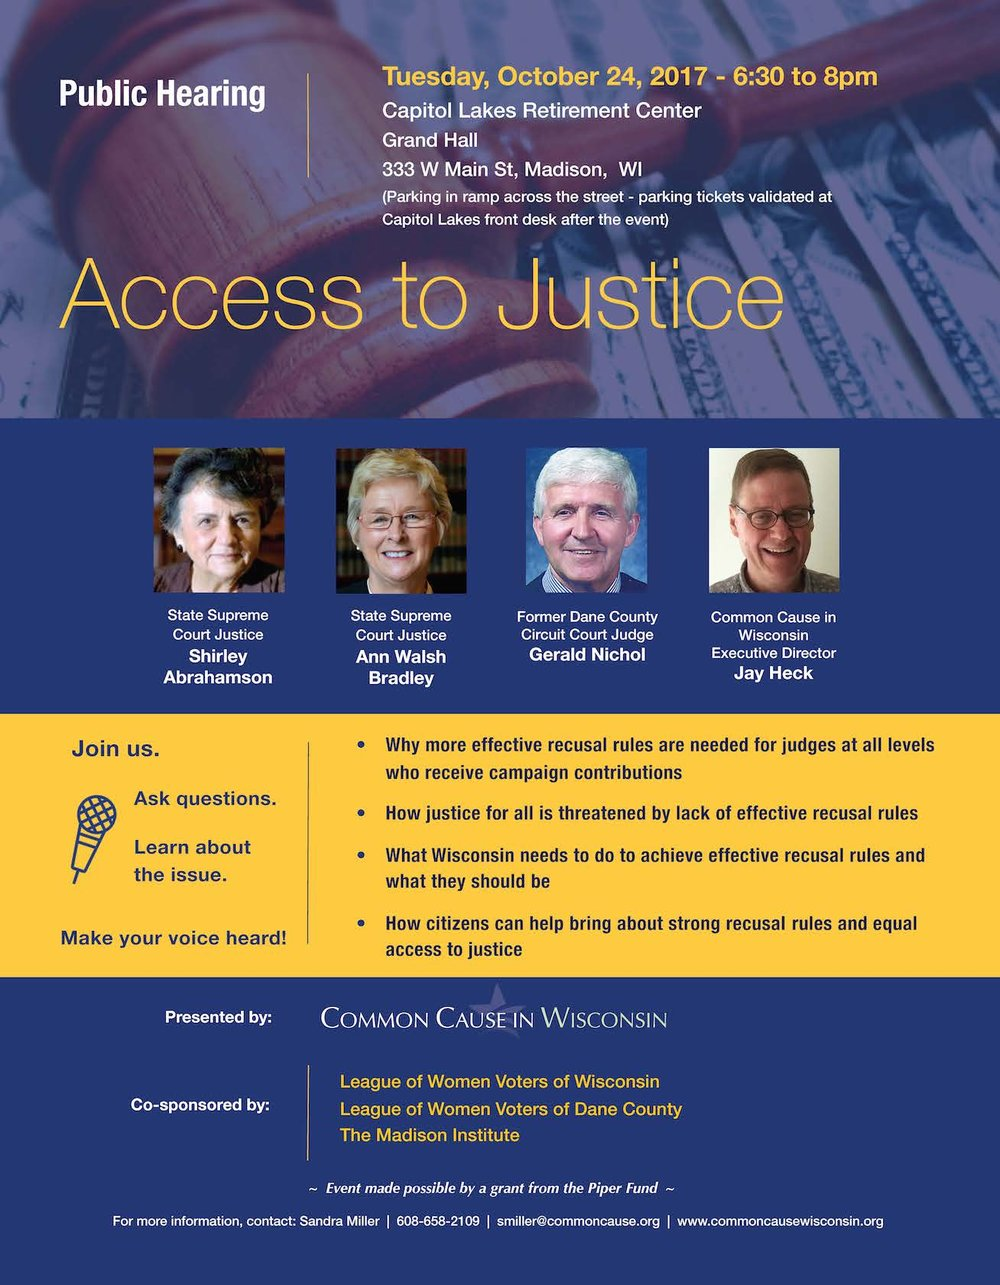 [Updated flyer shows additional co-sponsor: The Madison Institute.]